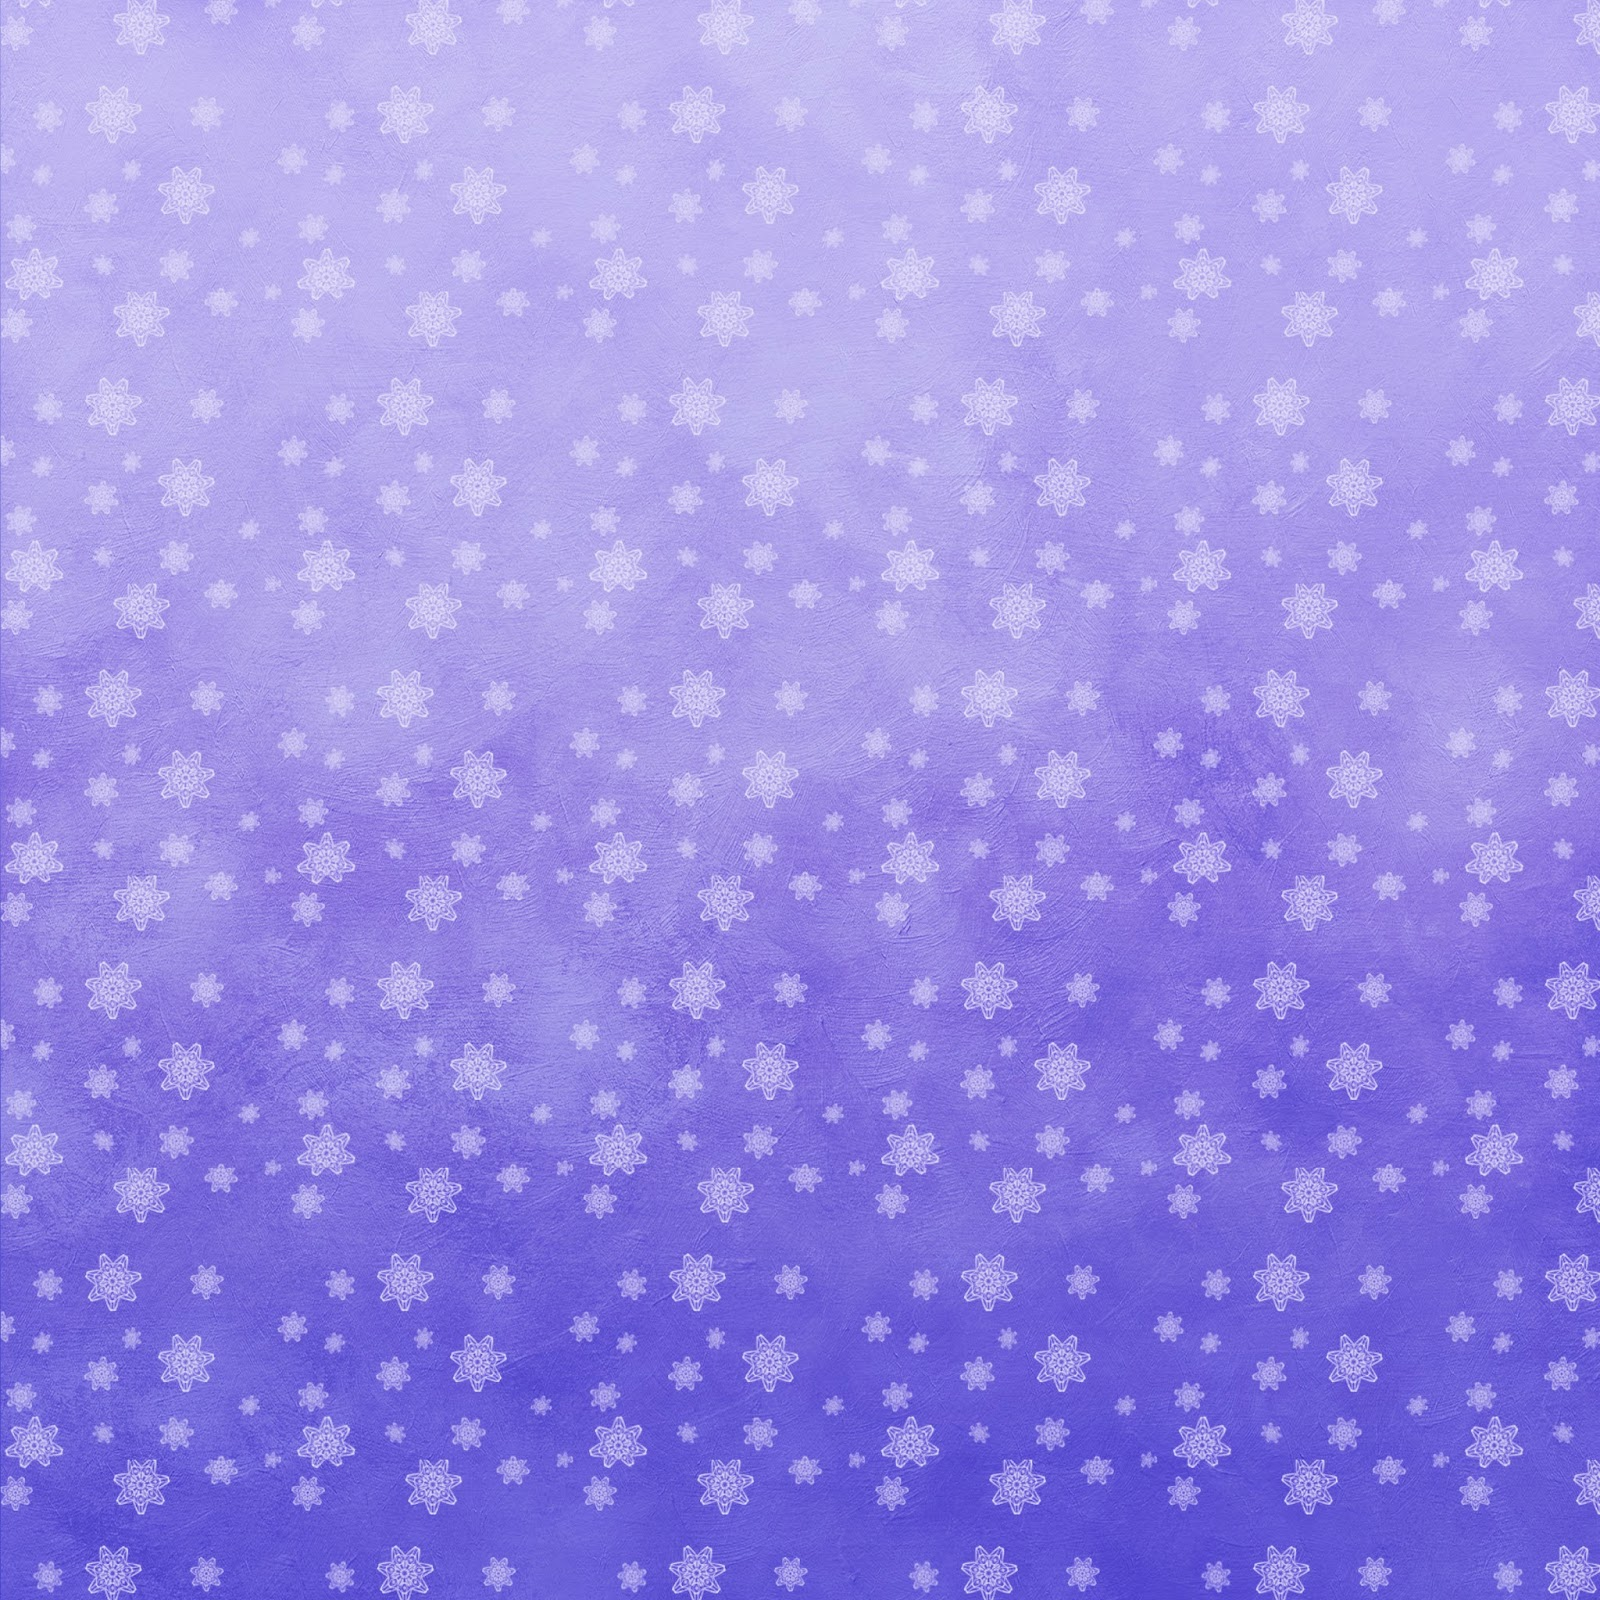 free christmas scrapbook paper high-res blue